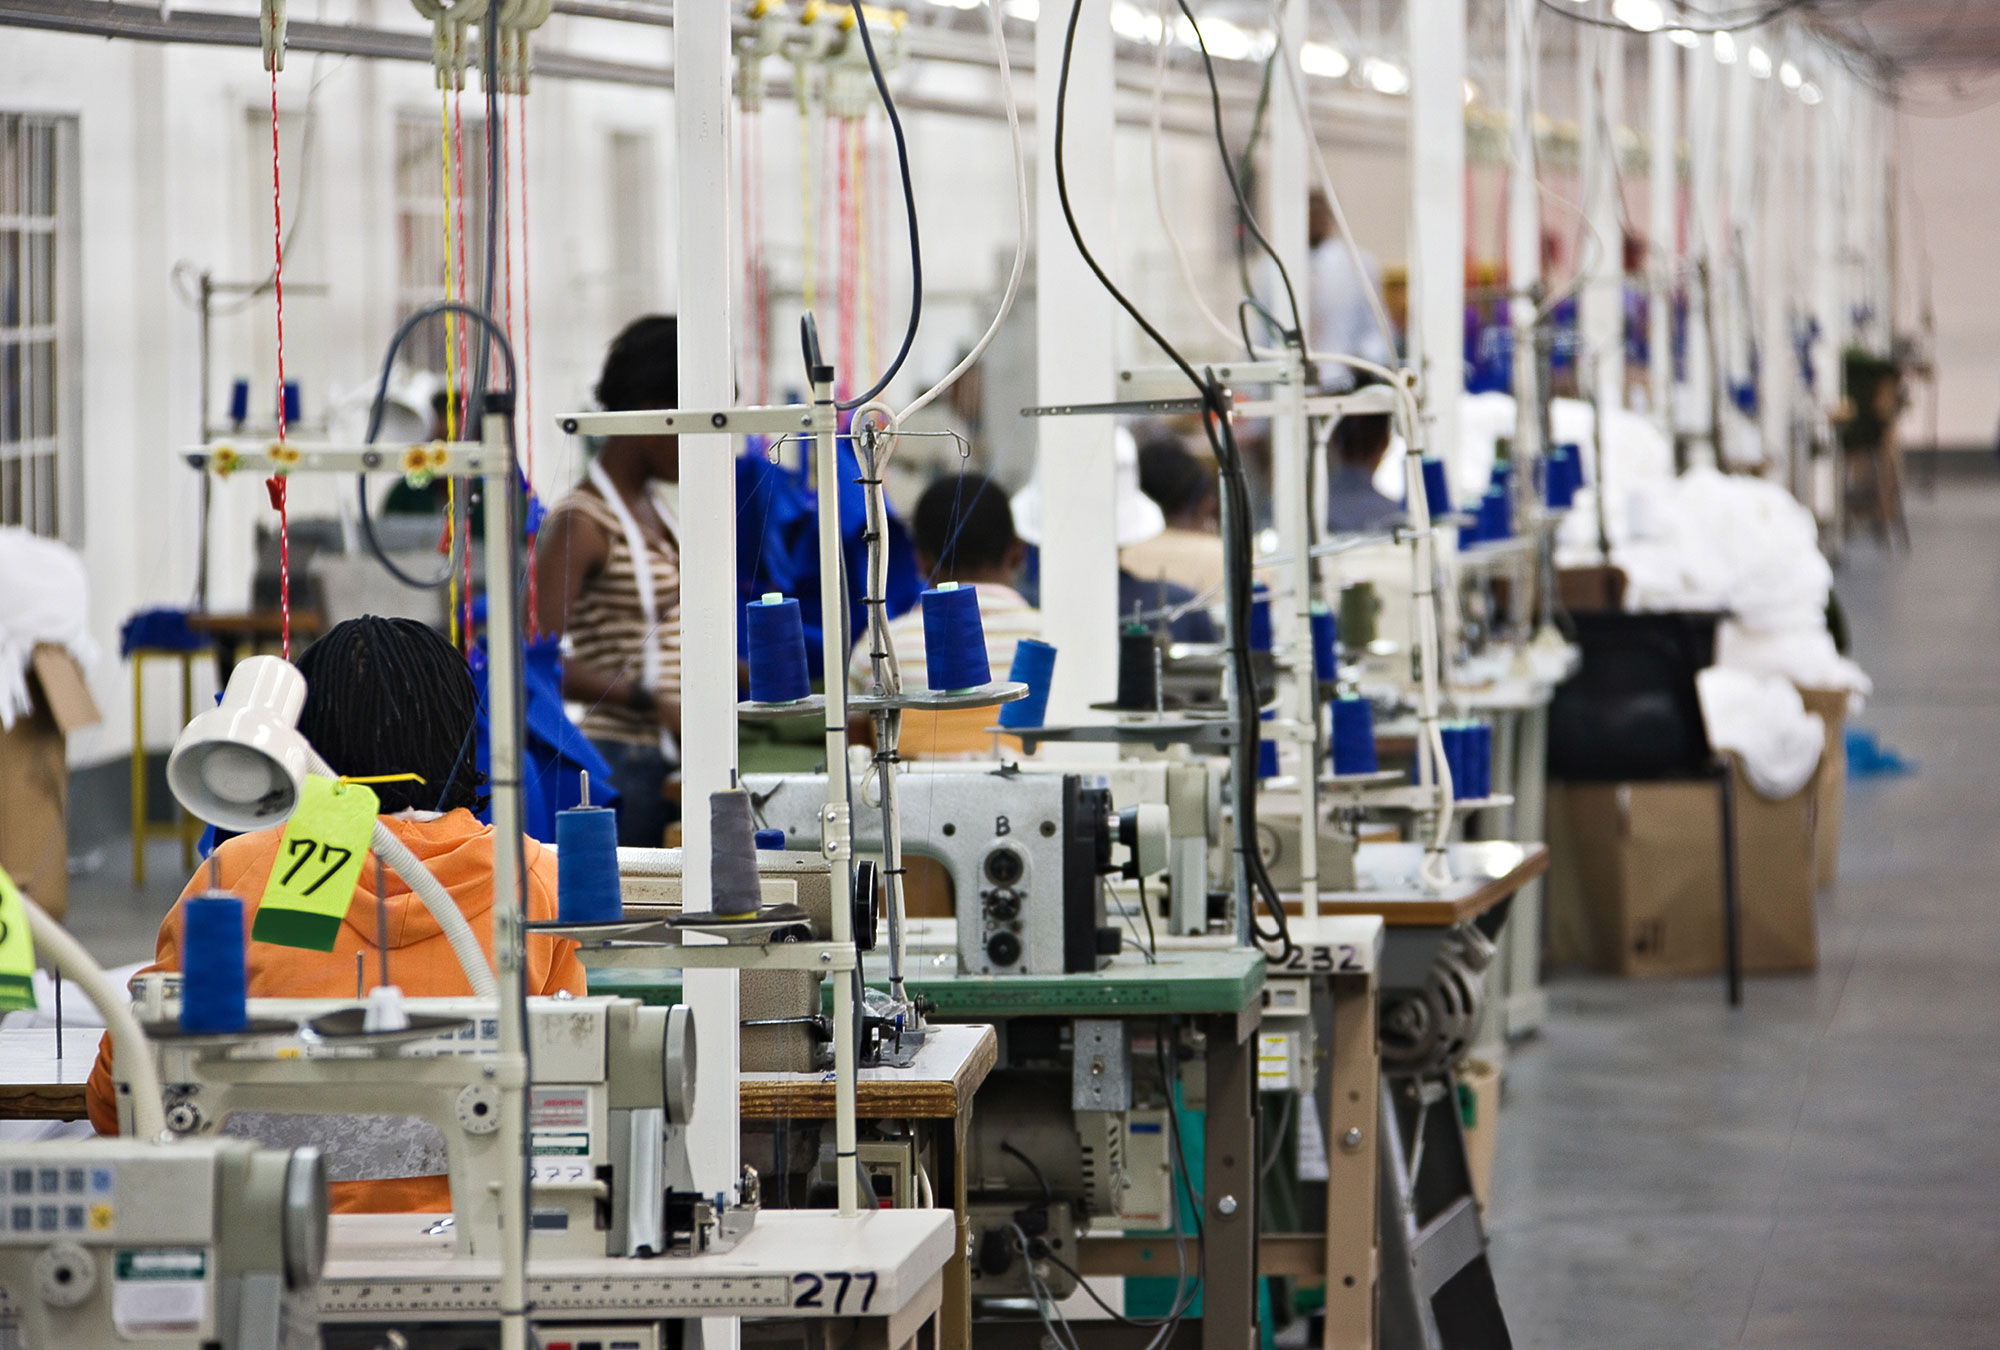 Rows of people working at industrial sewing machines